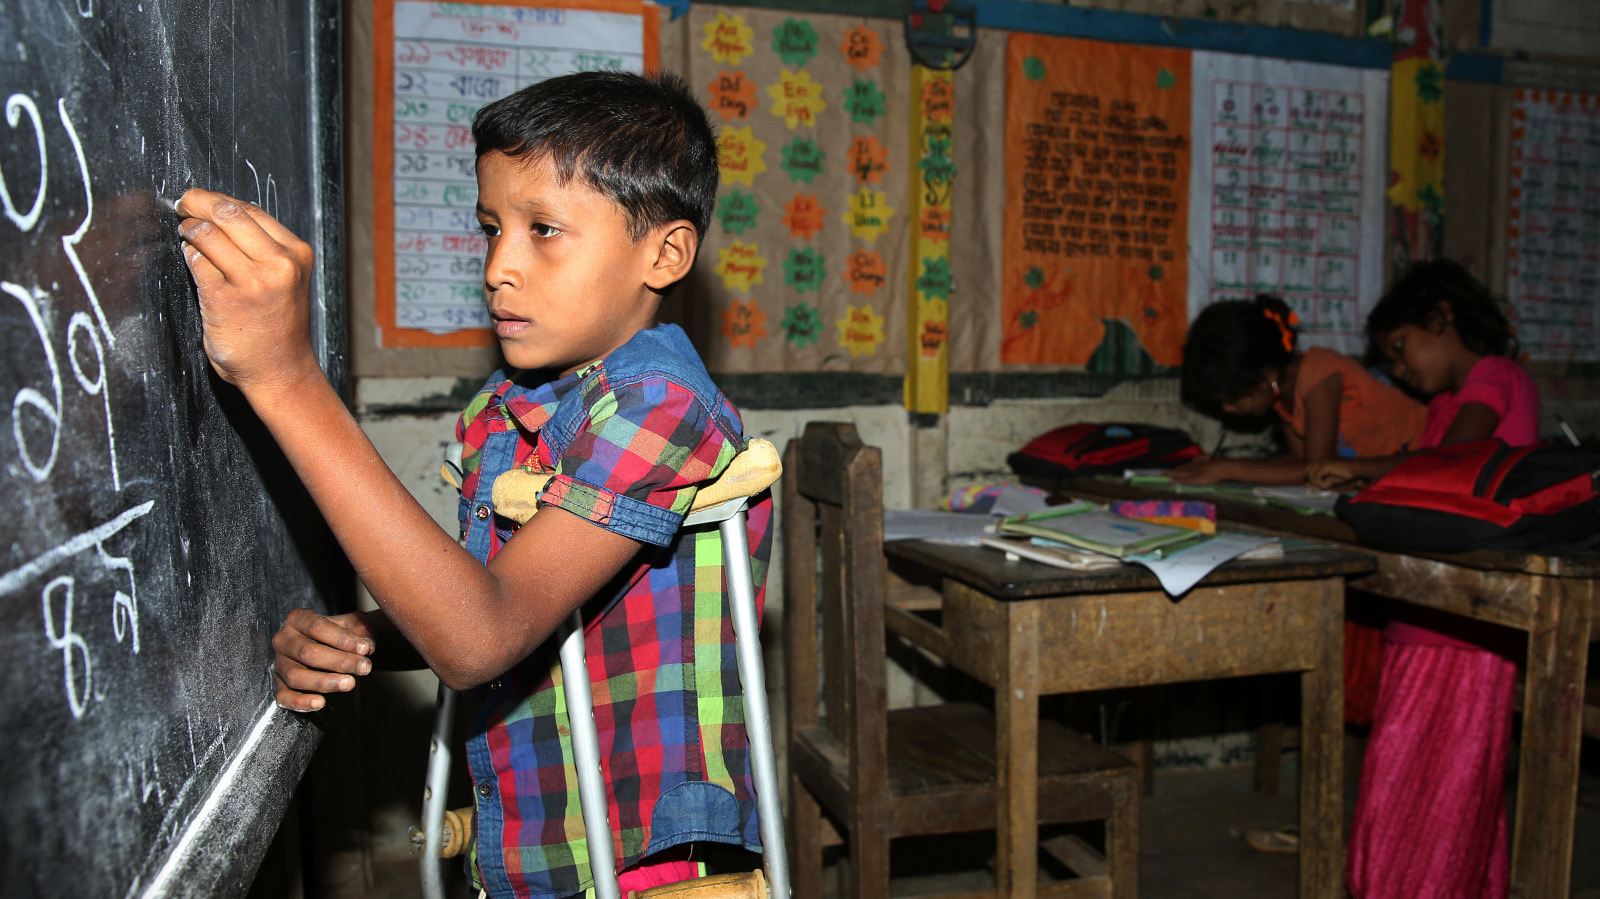 Saiful, 9, lives in Rohingyas refugees camp in Kutupalong, in south of Bangladesh.